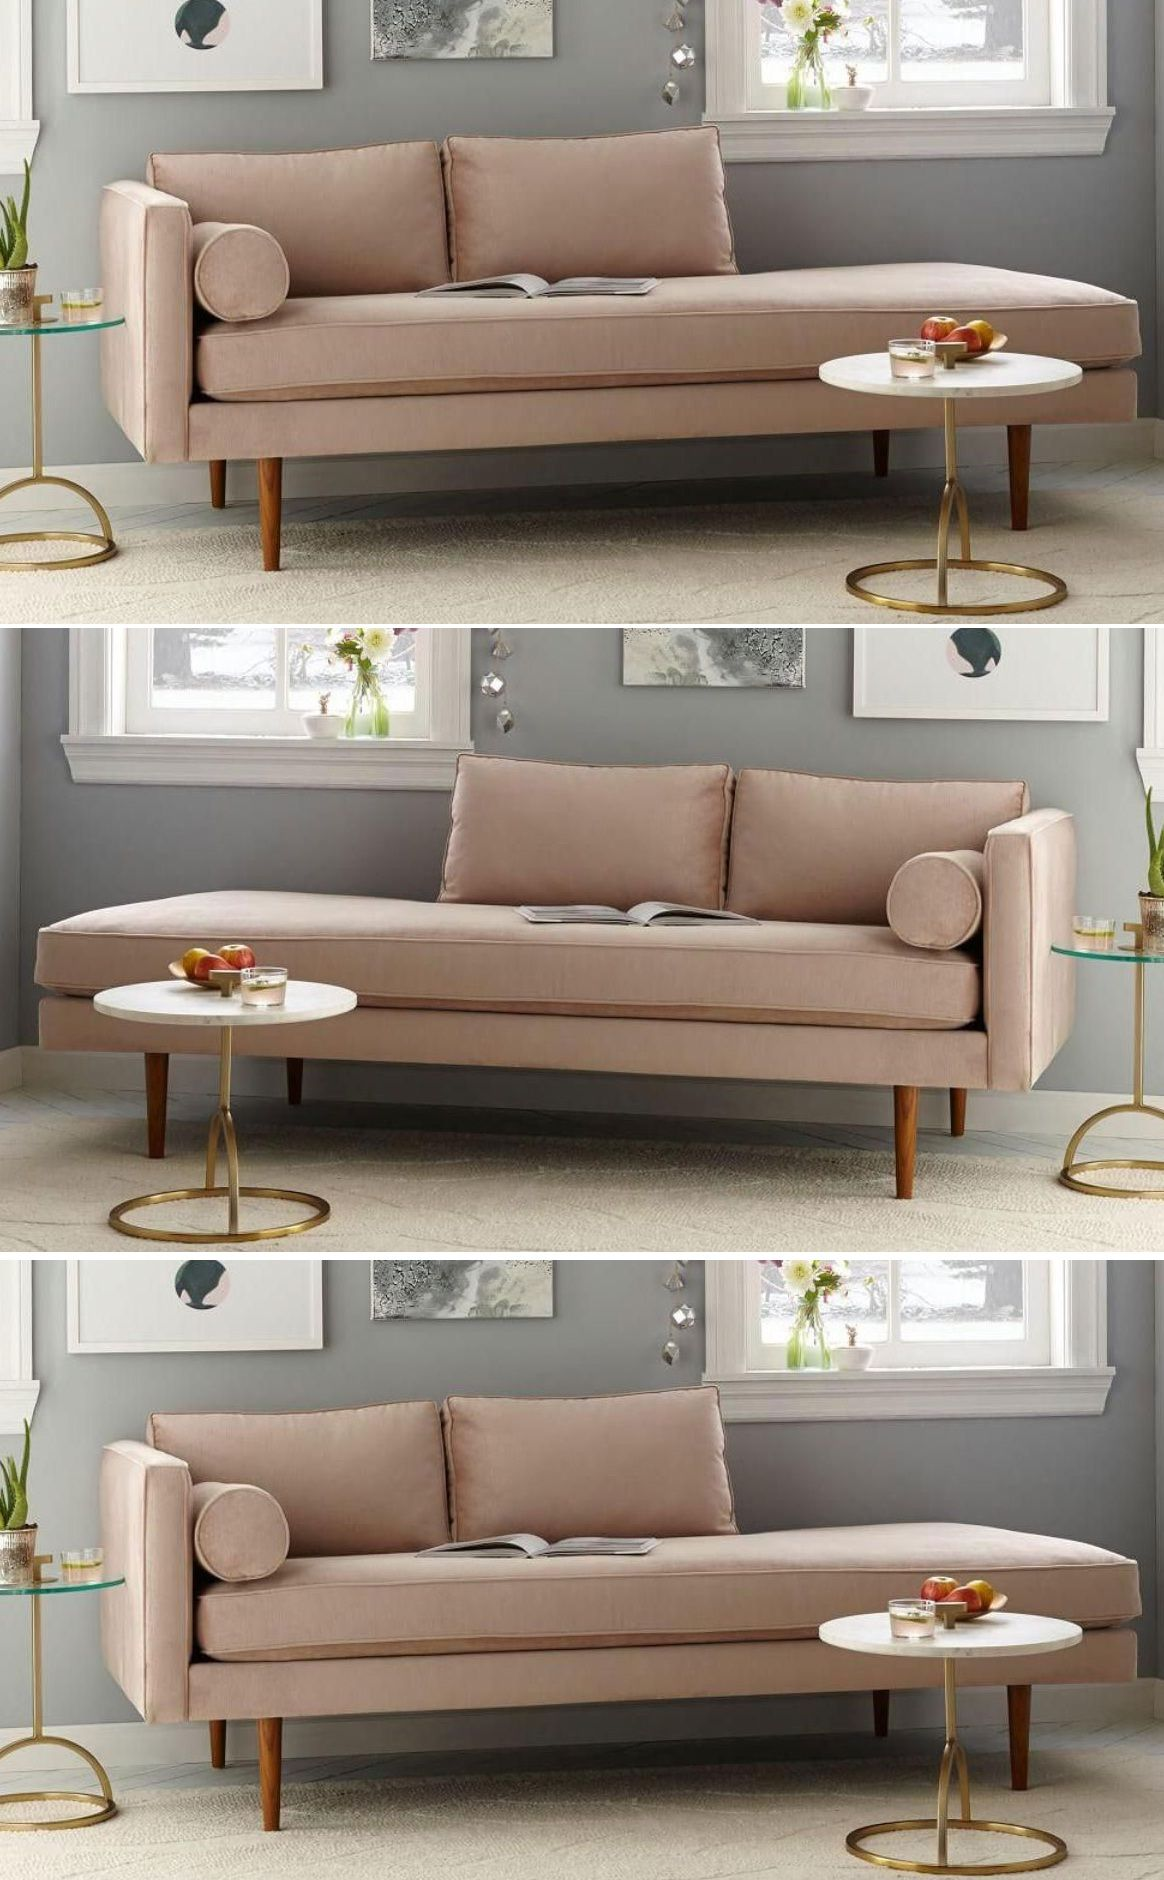 How To Protect Sofa Fabric Furniture Pallet Furniture Sofa Design